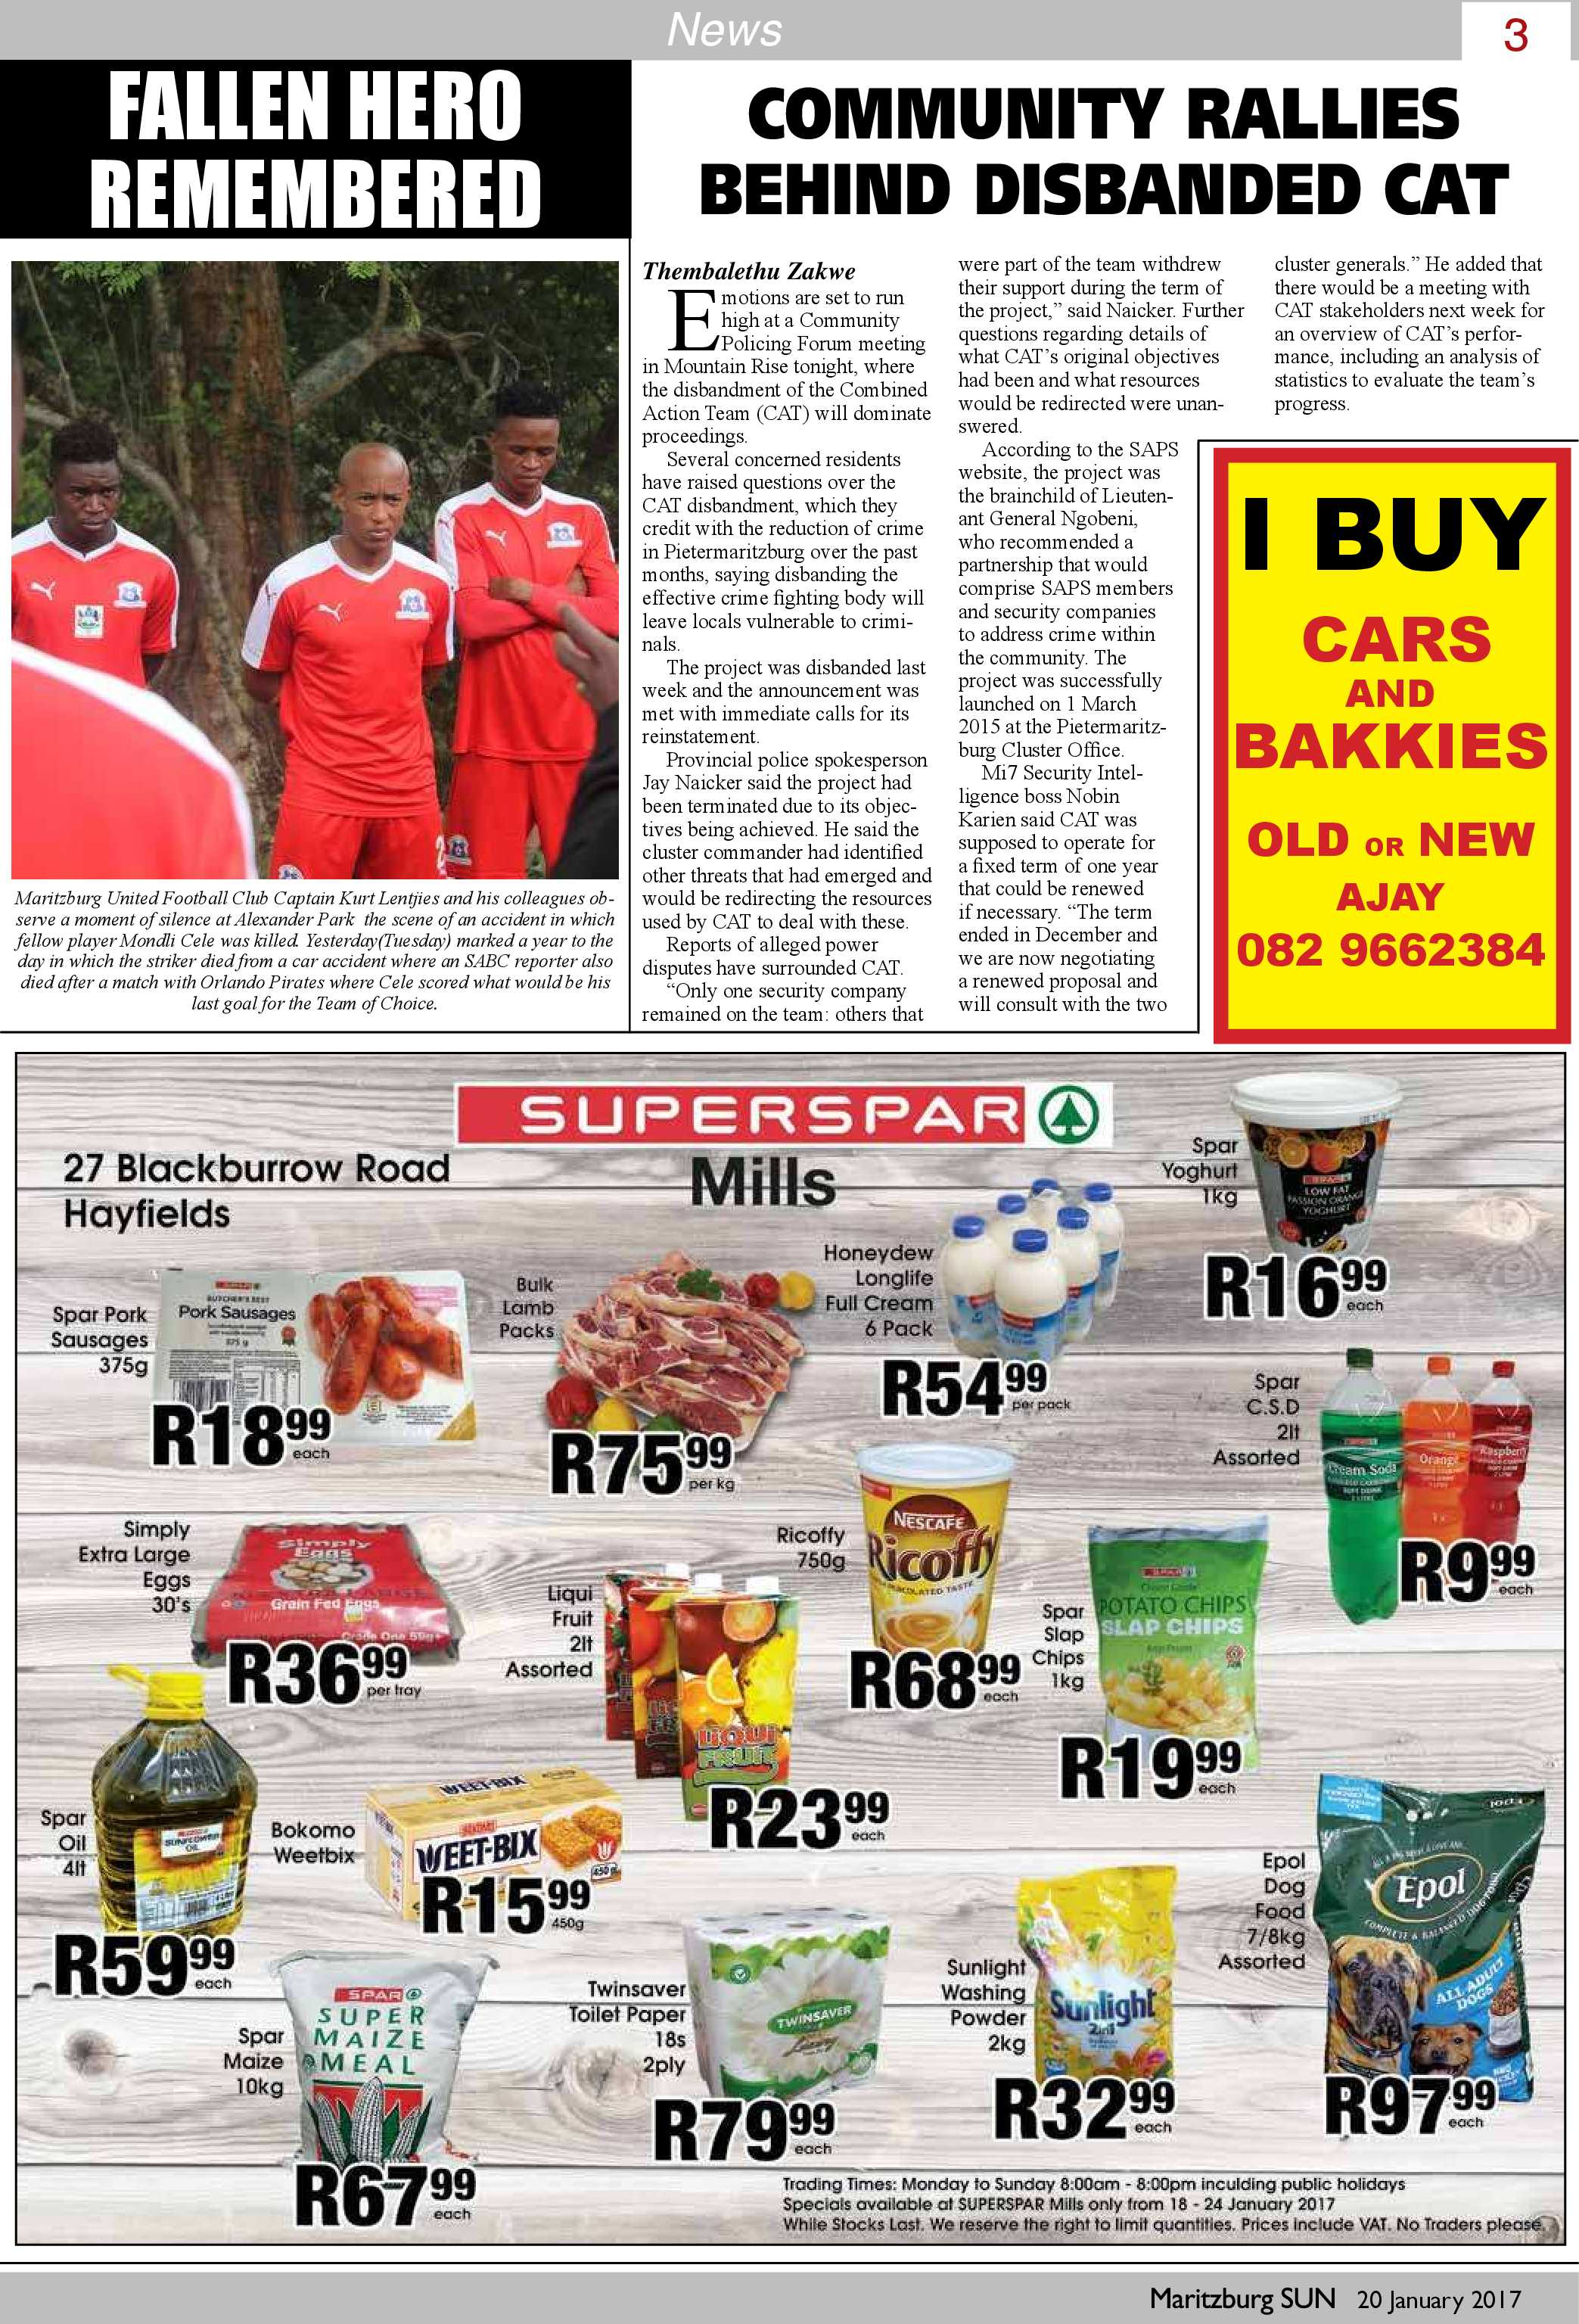 maritzburg-sun-20-01-2017-epapers-page-3